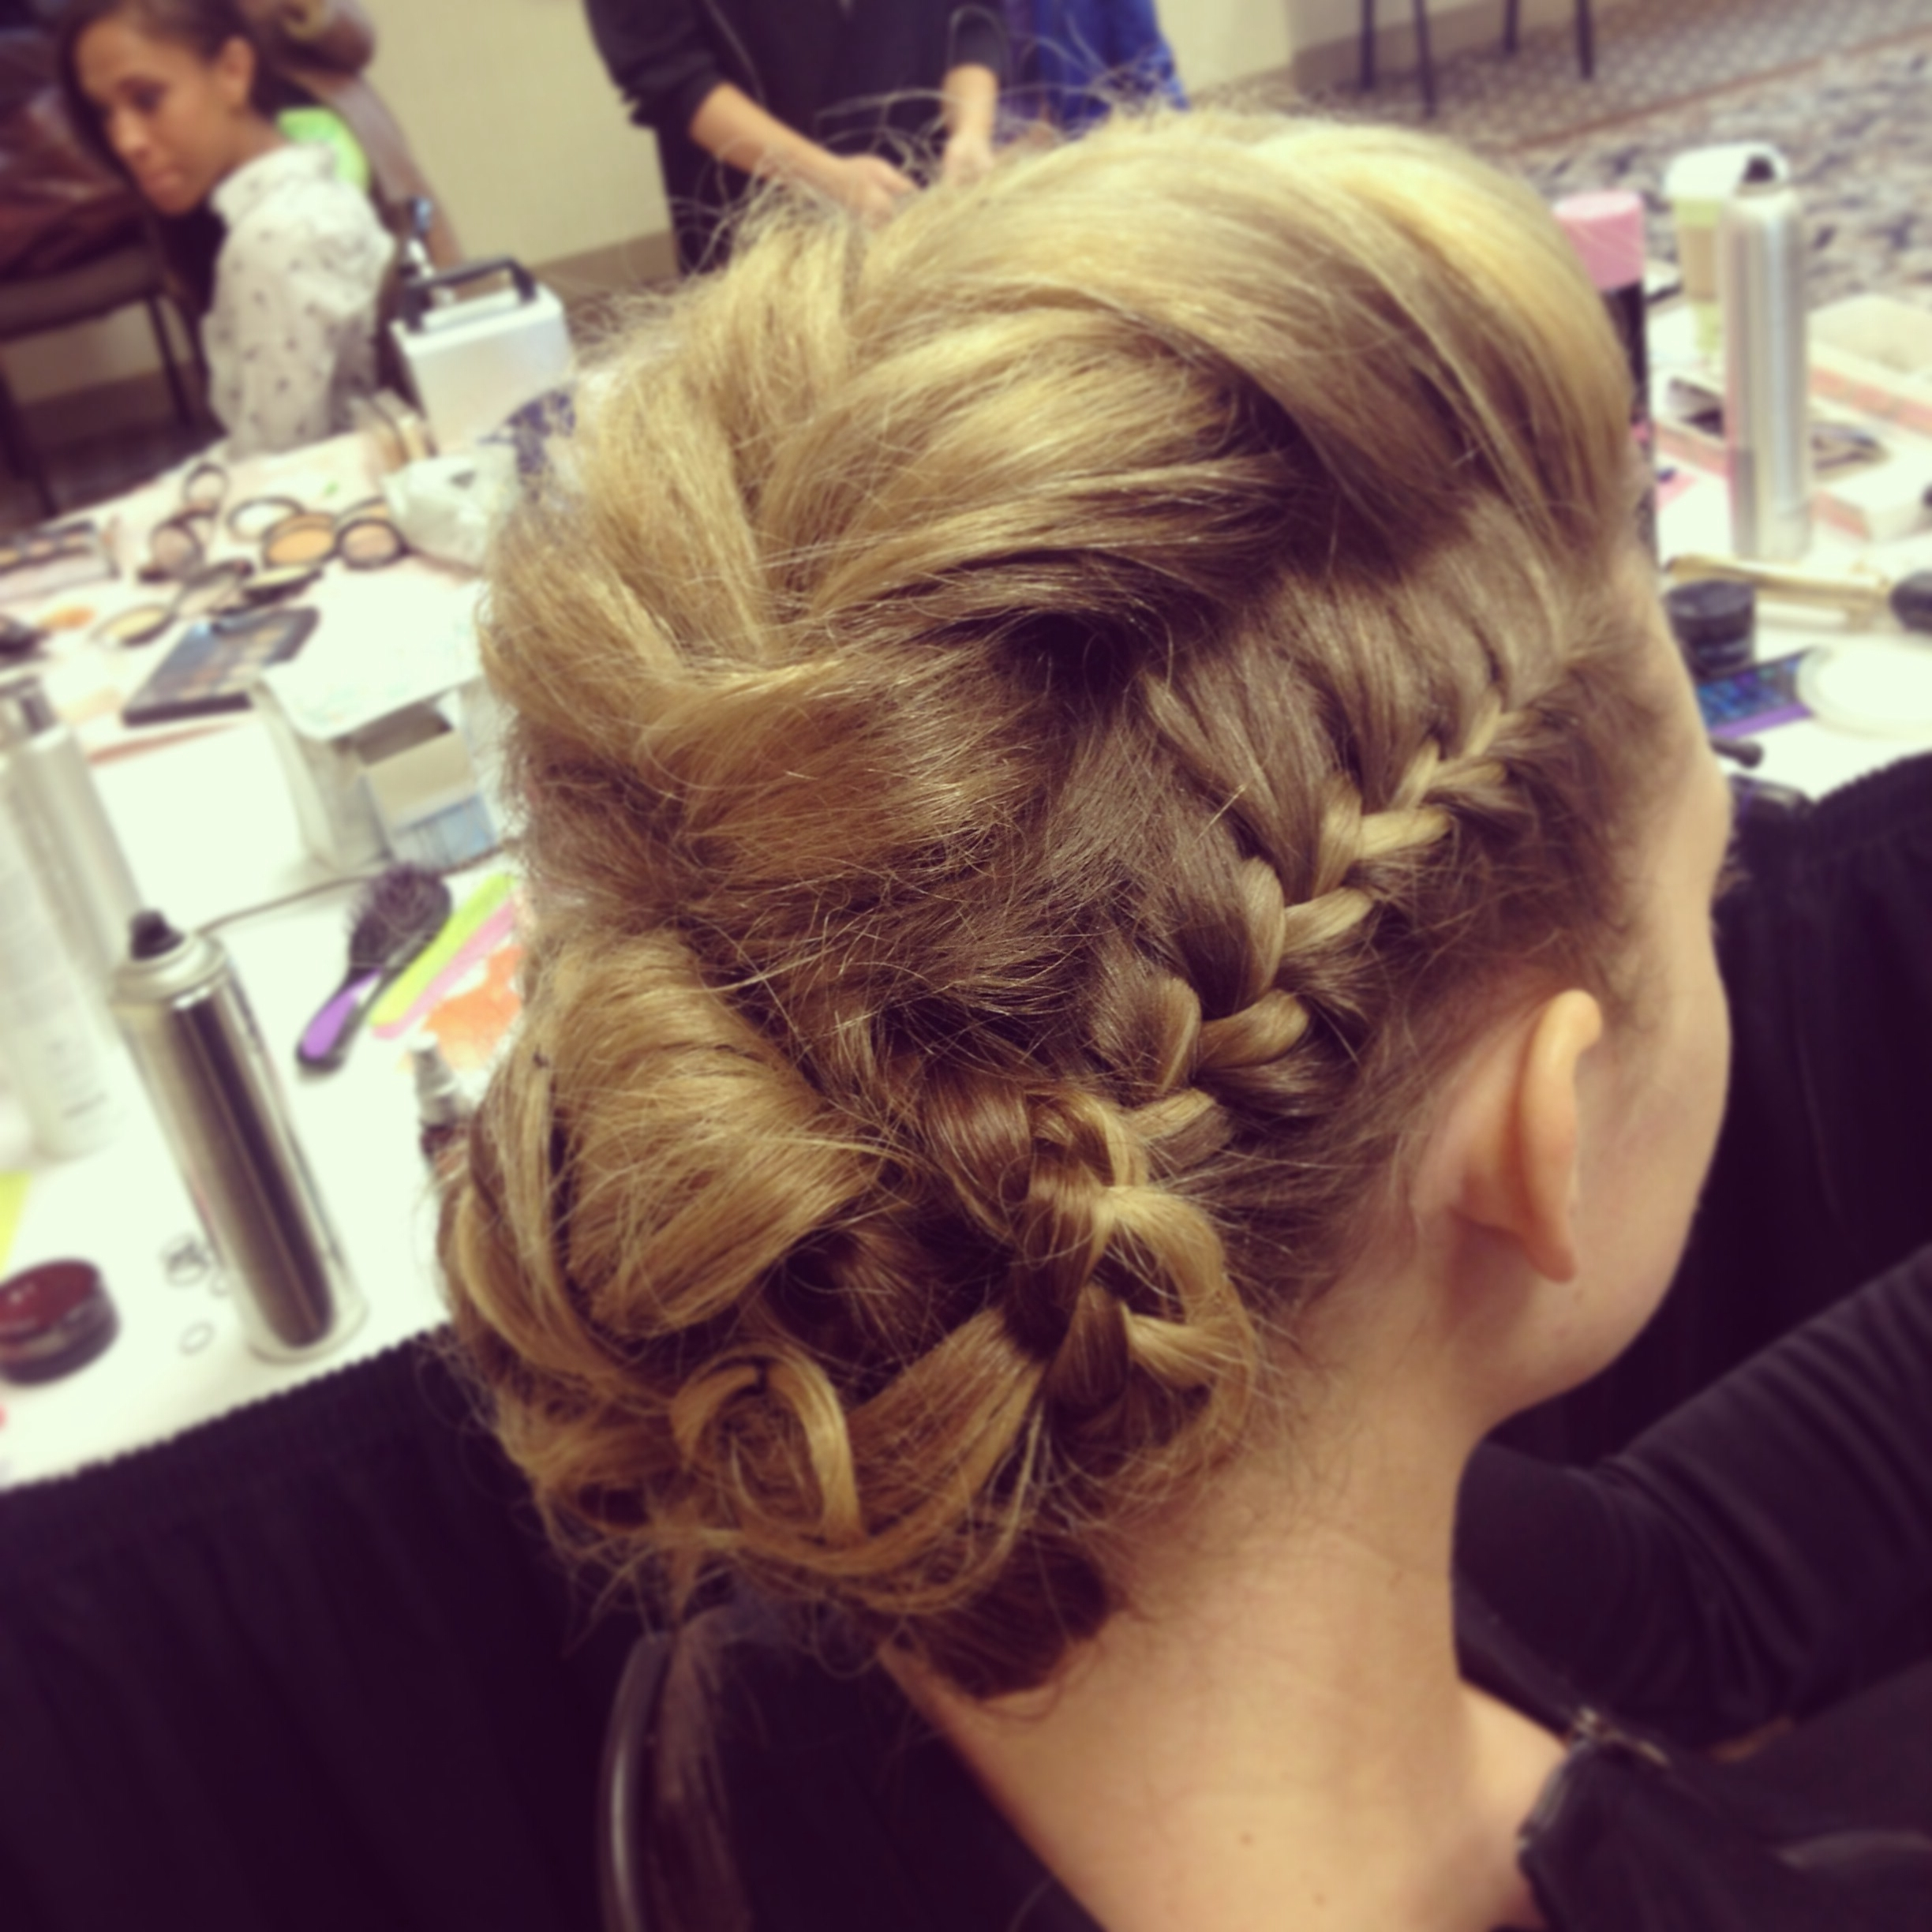 Hairstyles Updates (View 14 of 15)